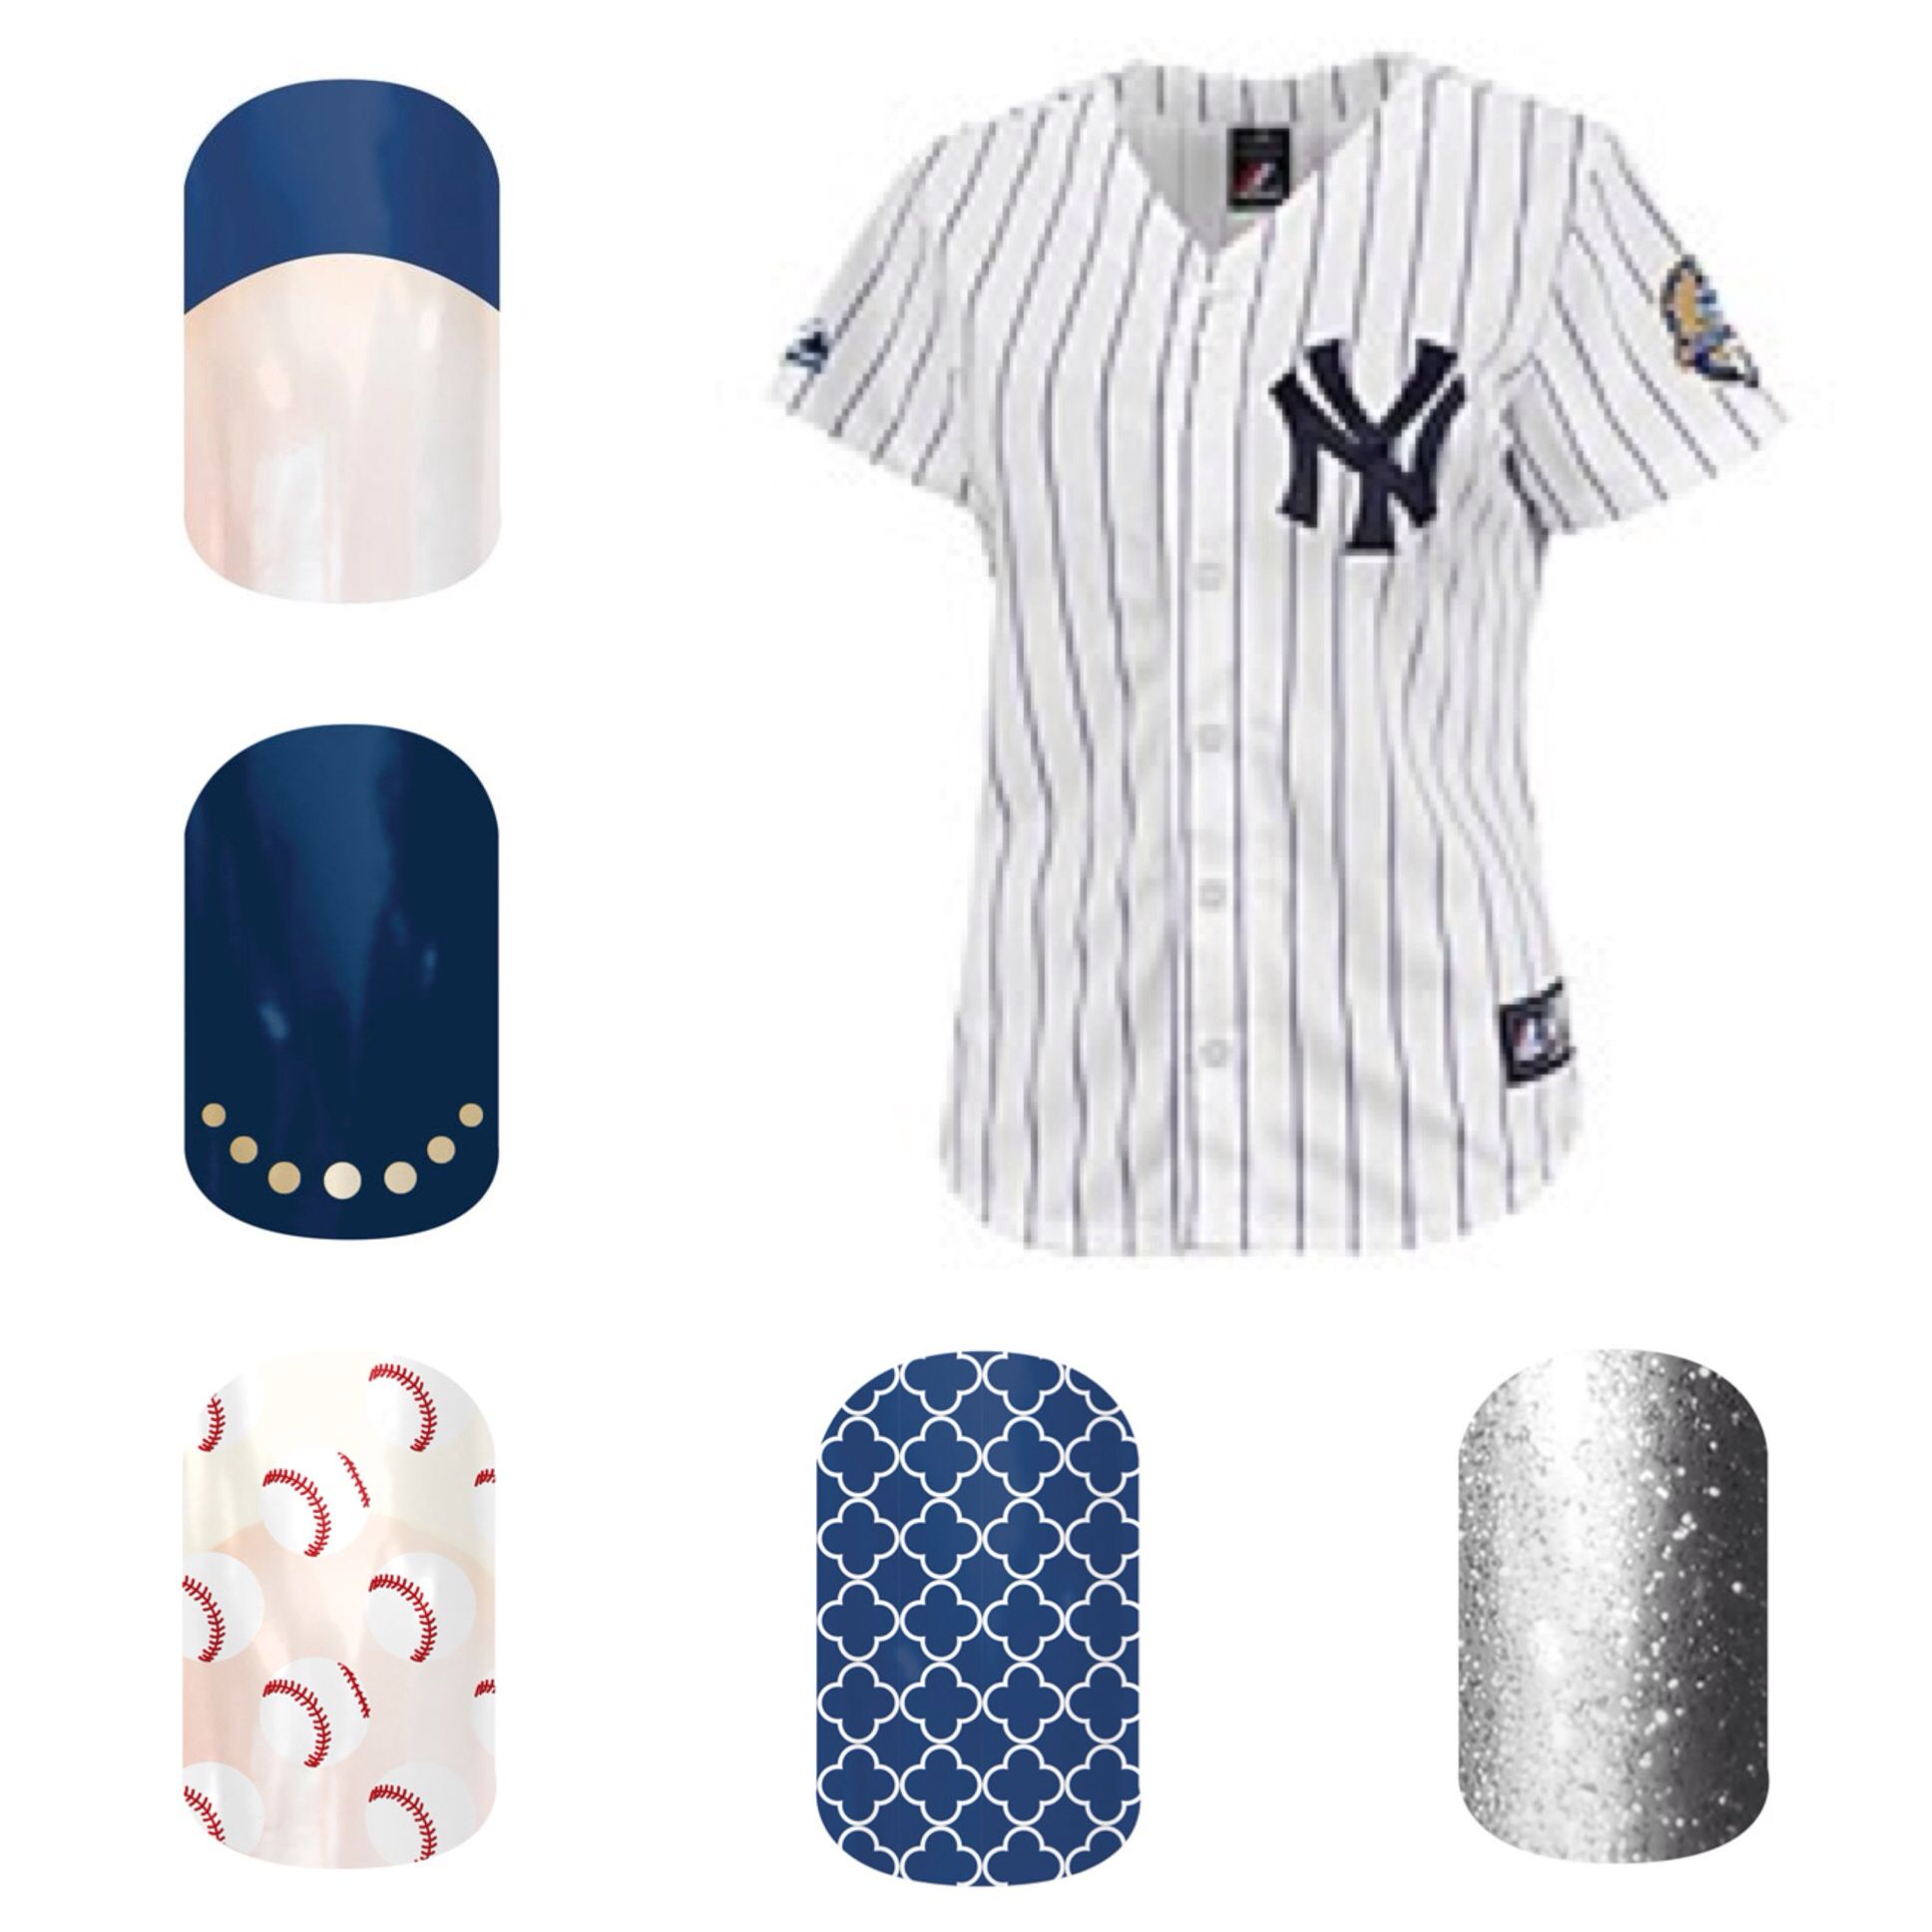 New York Yankees Color Scheme Order At Www Christinarunyon Jamberrynails Net Jamberry Nails Jamberry New York Yankees